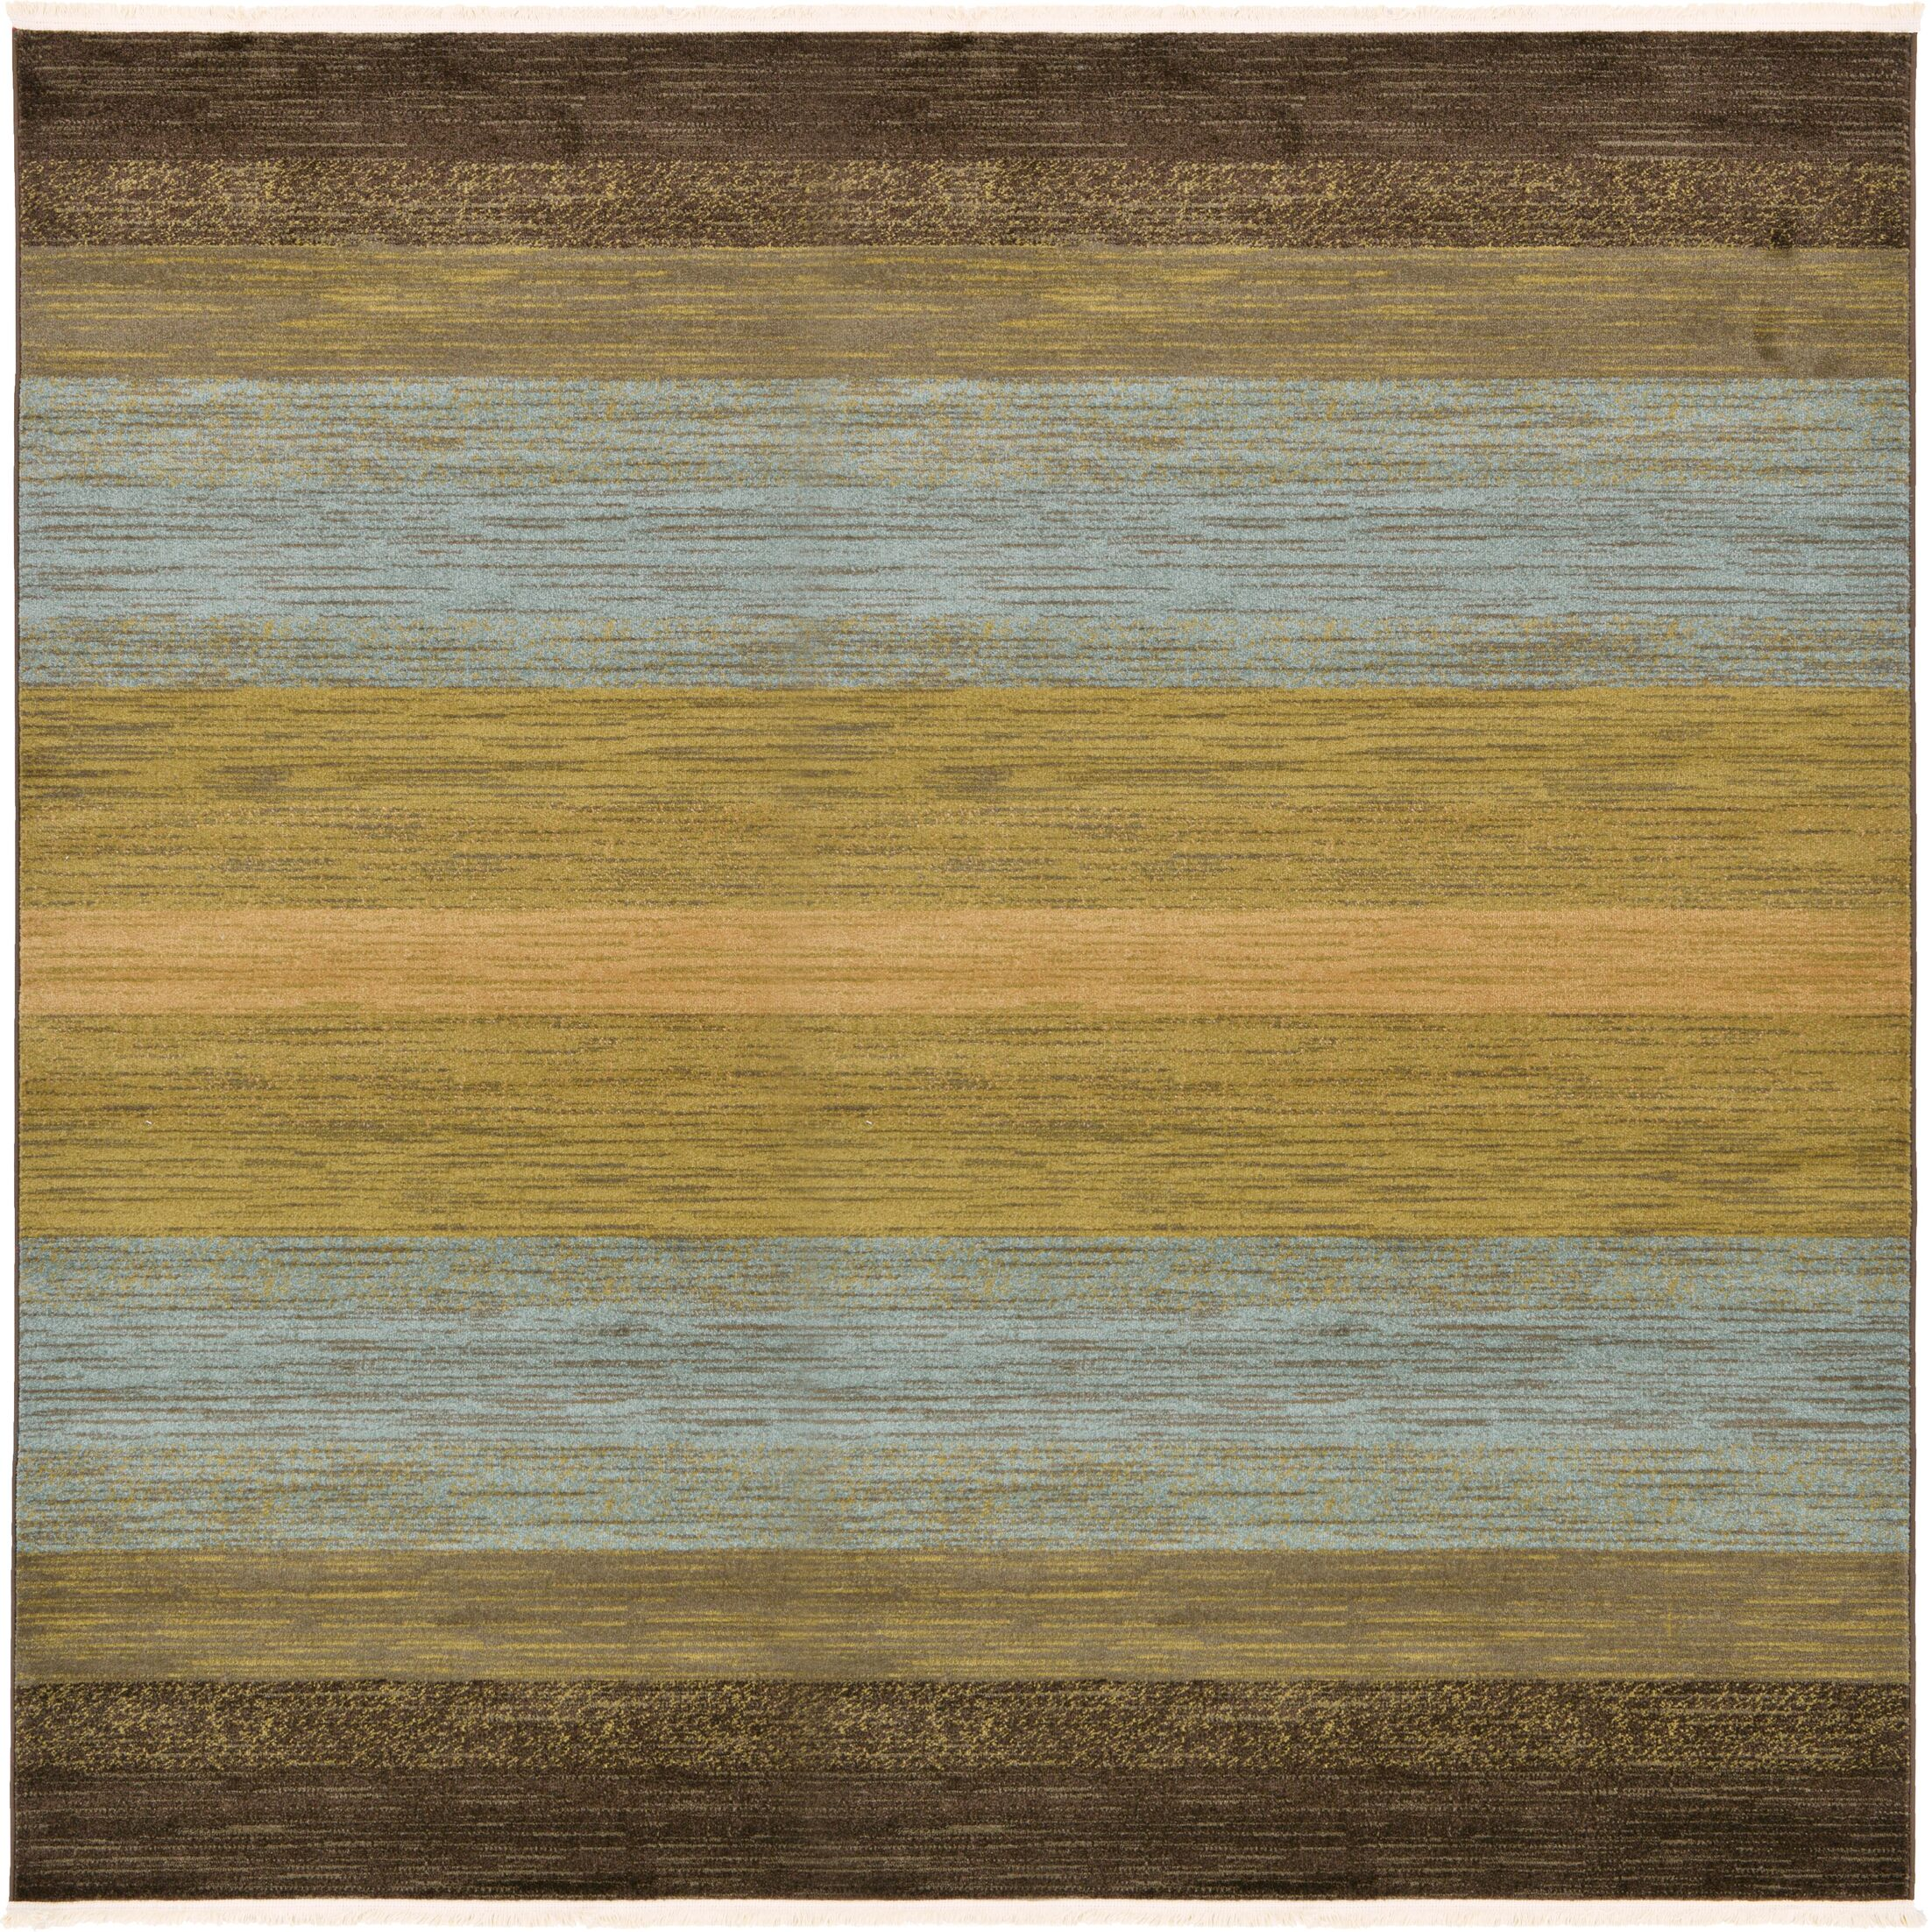 Simsbury Brown Area Rug Rug Size: Square 8'